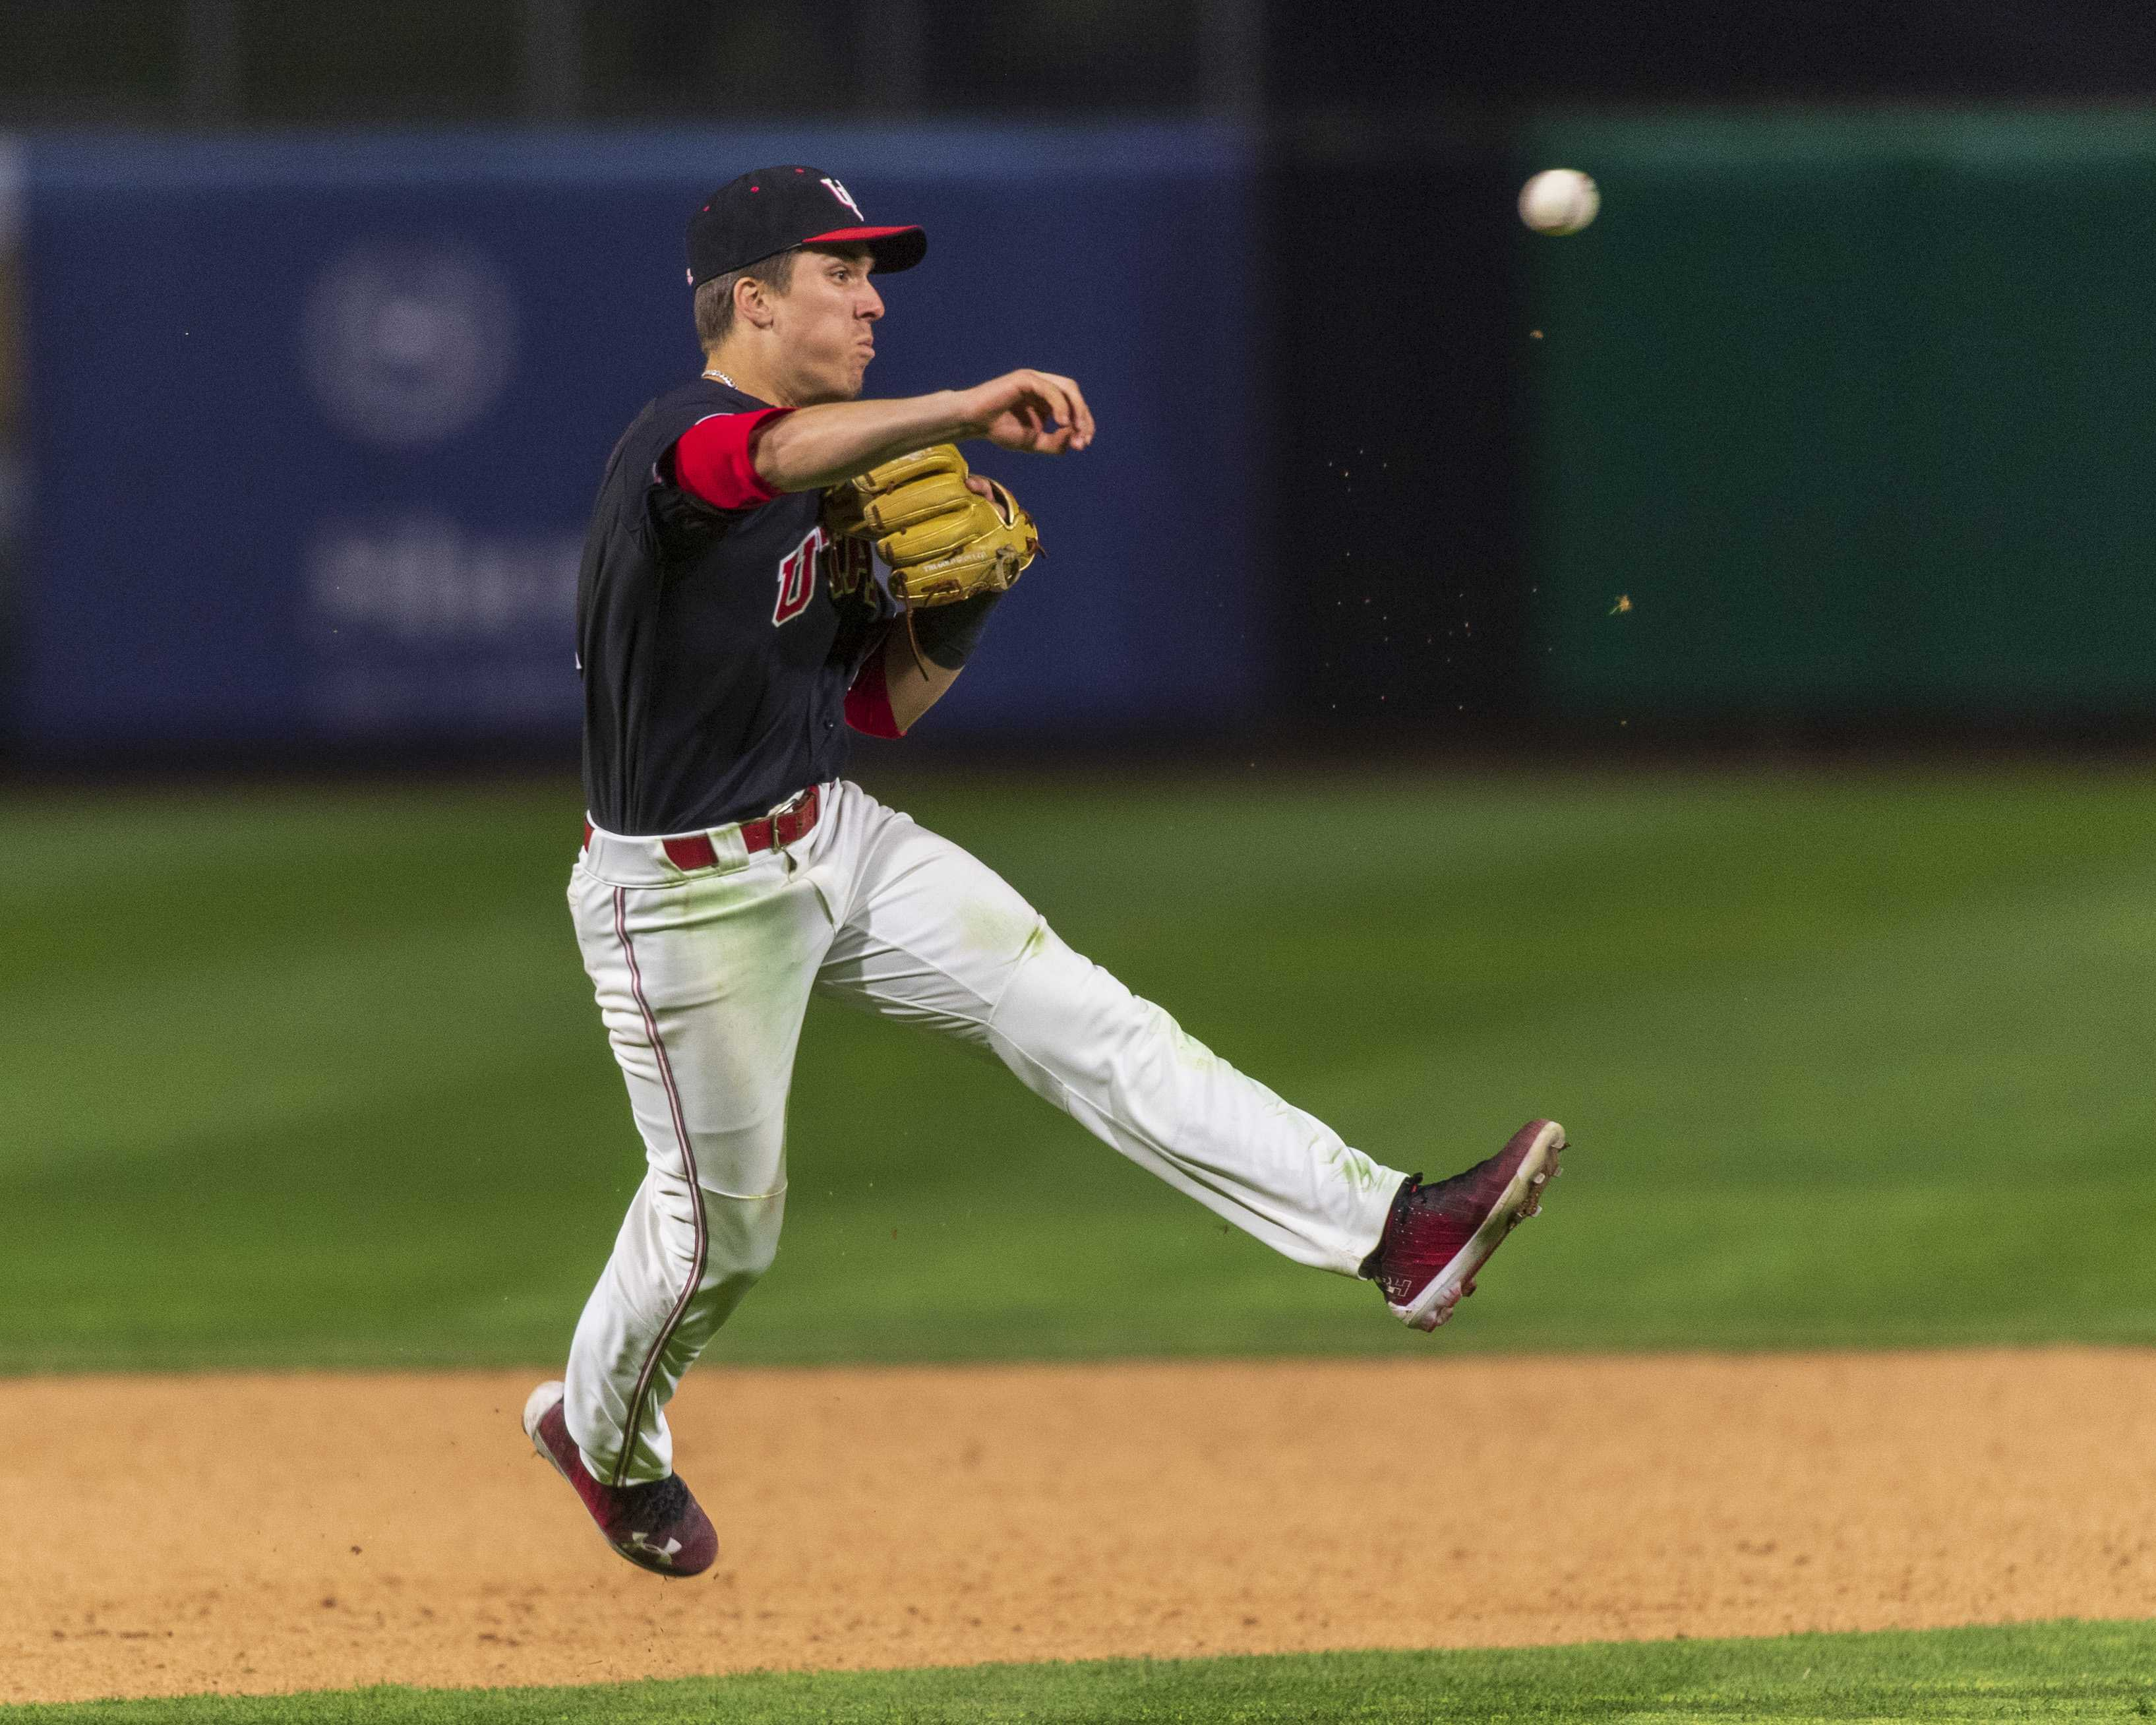 University of Utah sophomore infielder Matt Richardson (4) throws to first during an NCAA Baseball game at the Smith's Ballpark in Salt Lake City, Utah on Thursday, April 11, 2019. (Photo by Kiffer Creveling | The Daily Utah Chronicle)